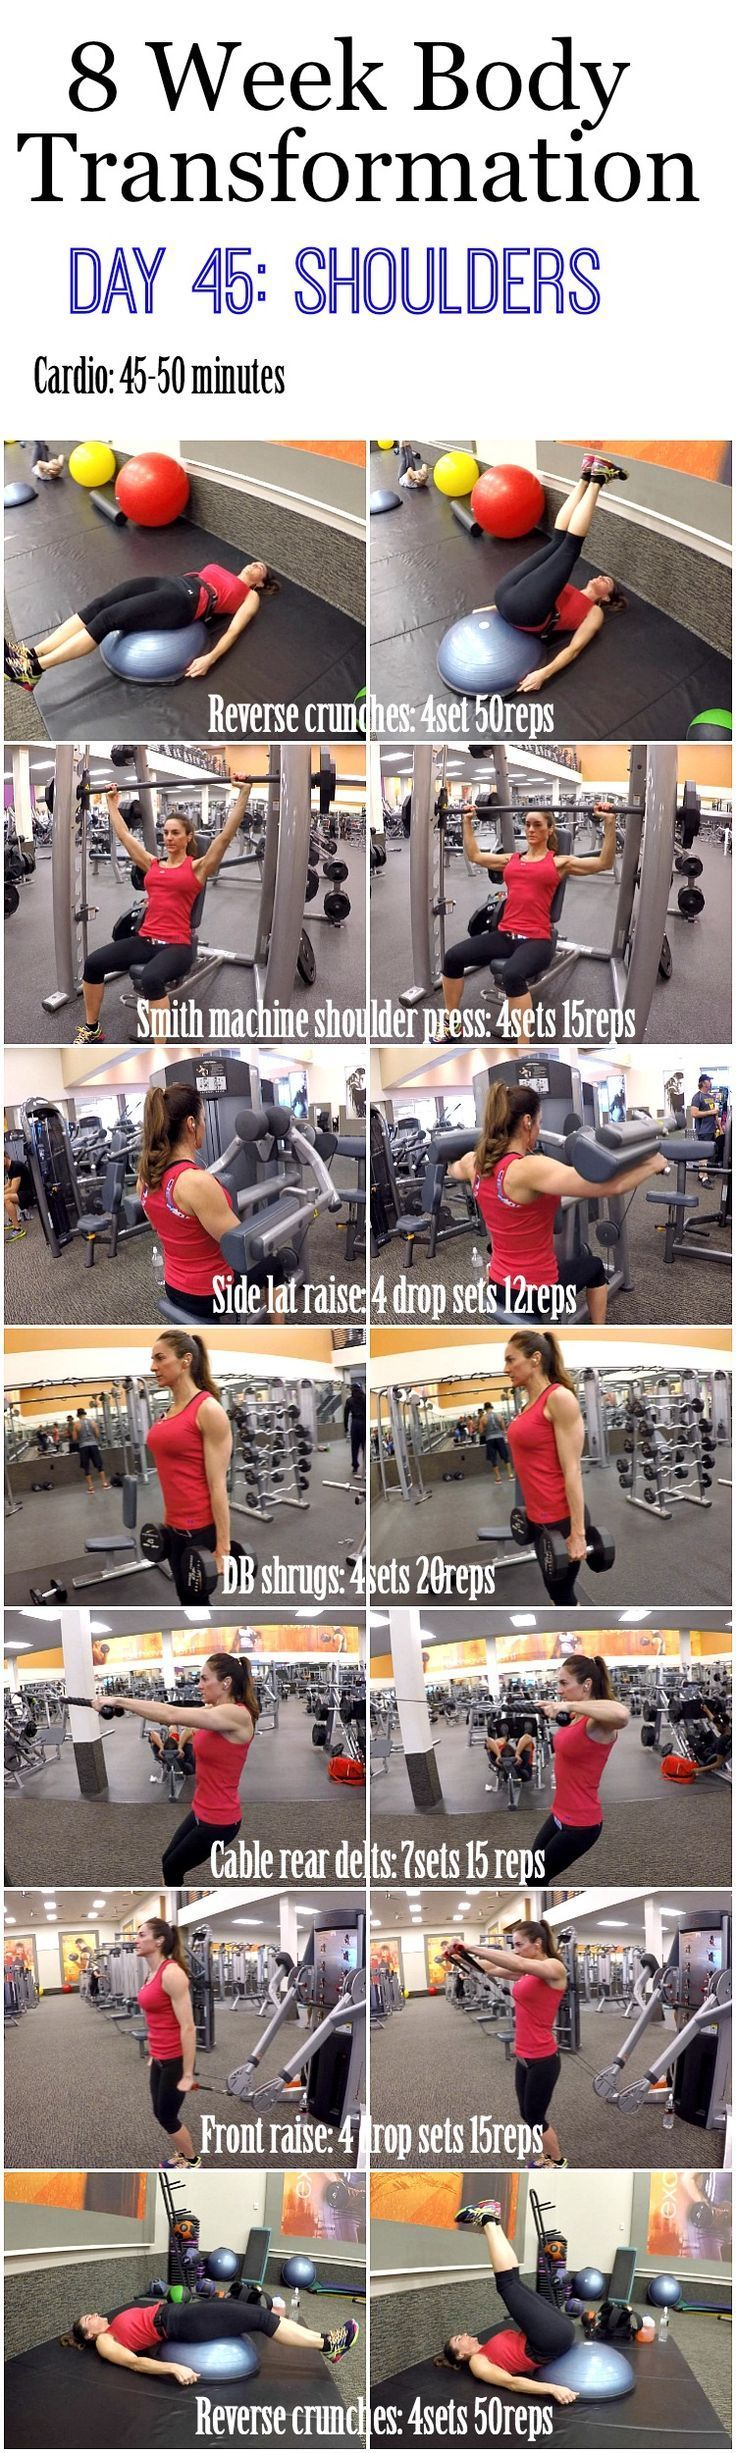 awesome 8 Week Body Transformation: Day 45 SHOULDERS - Fitness Food Diva